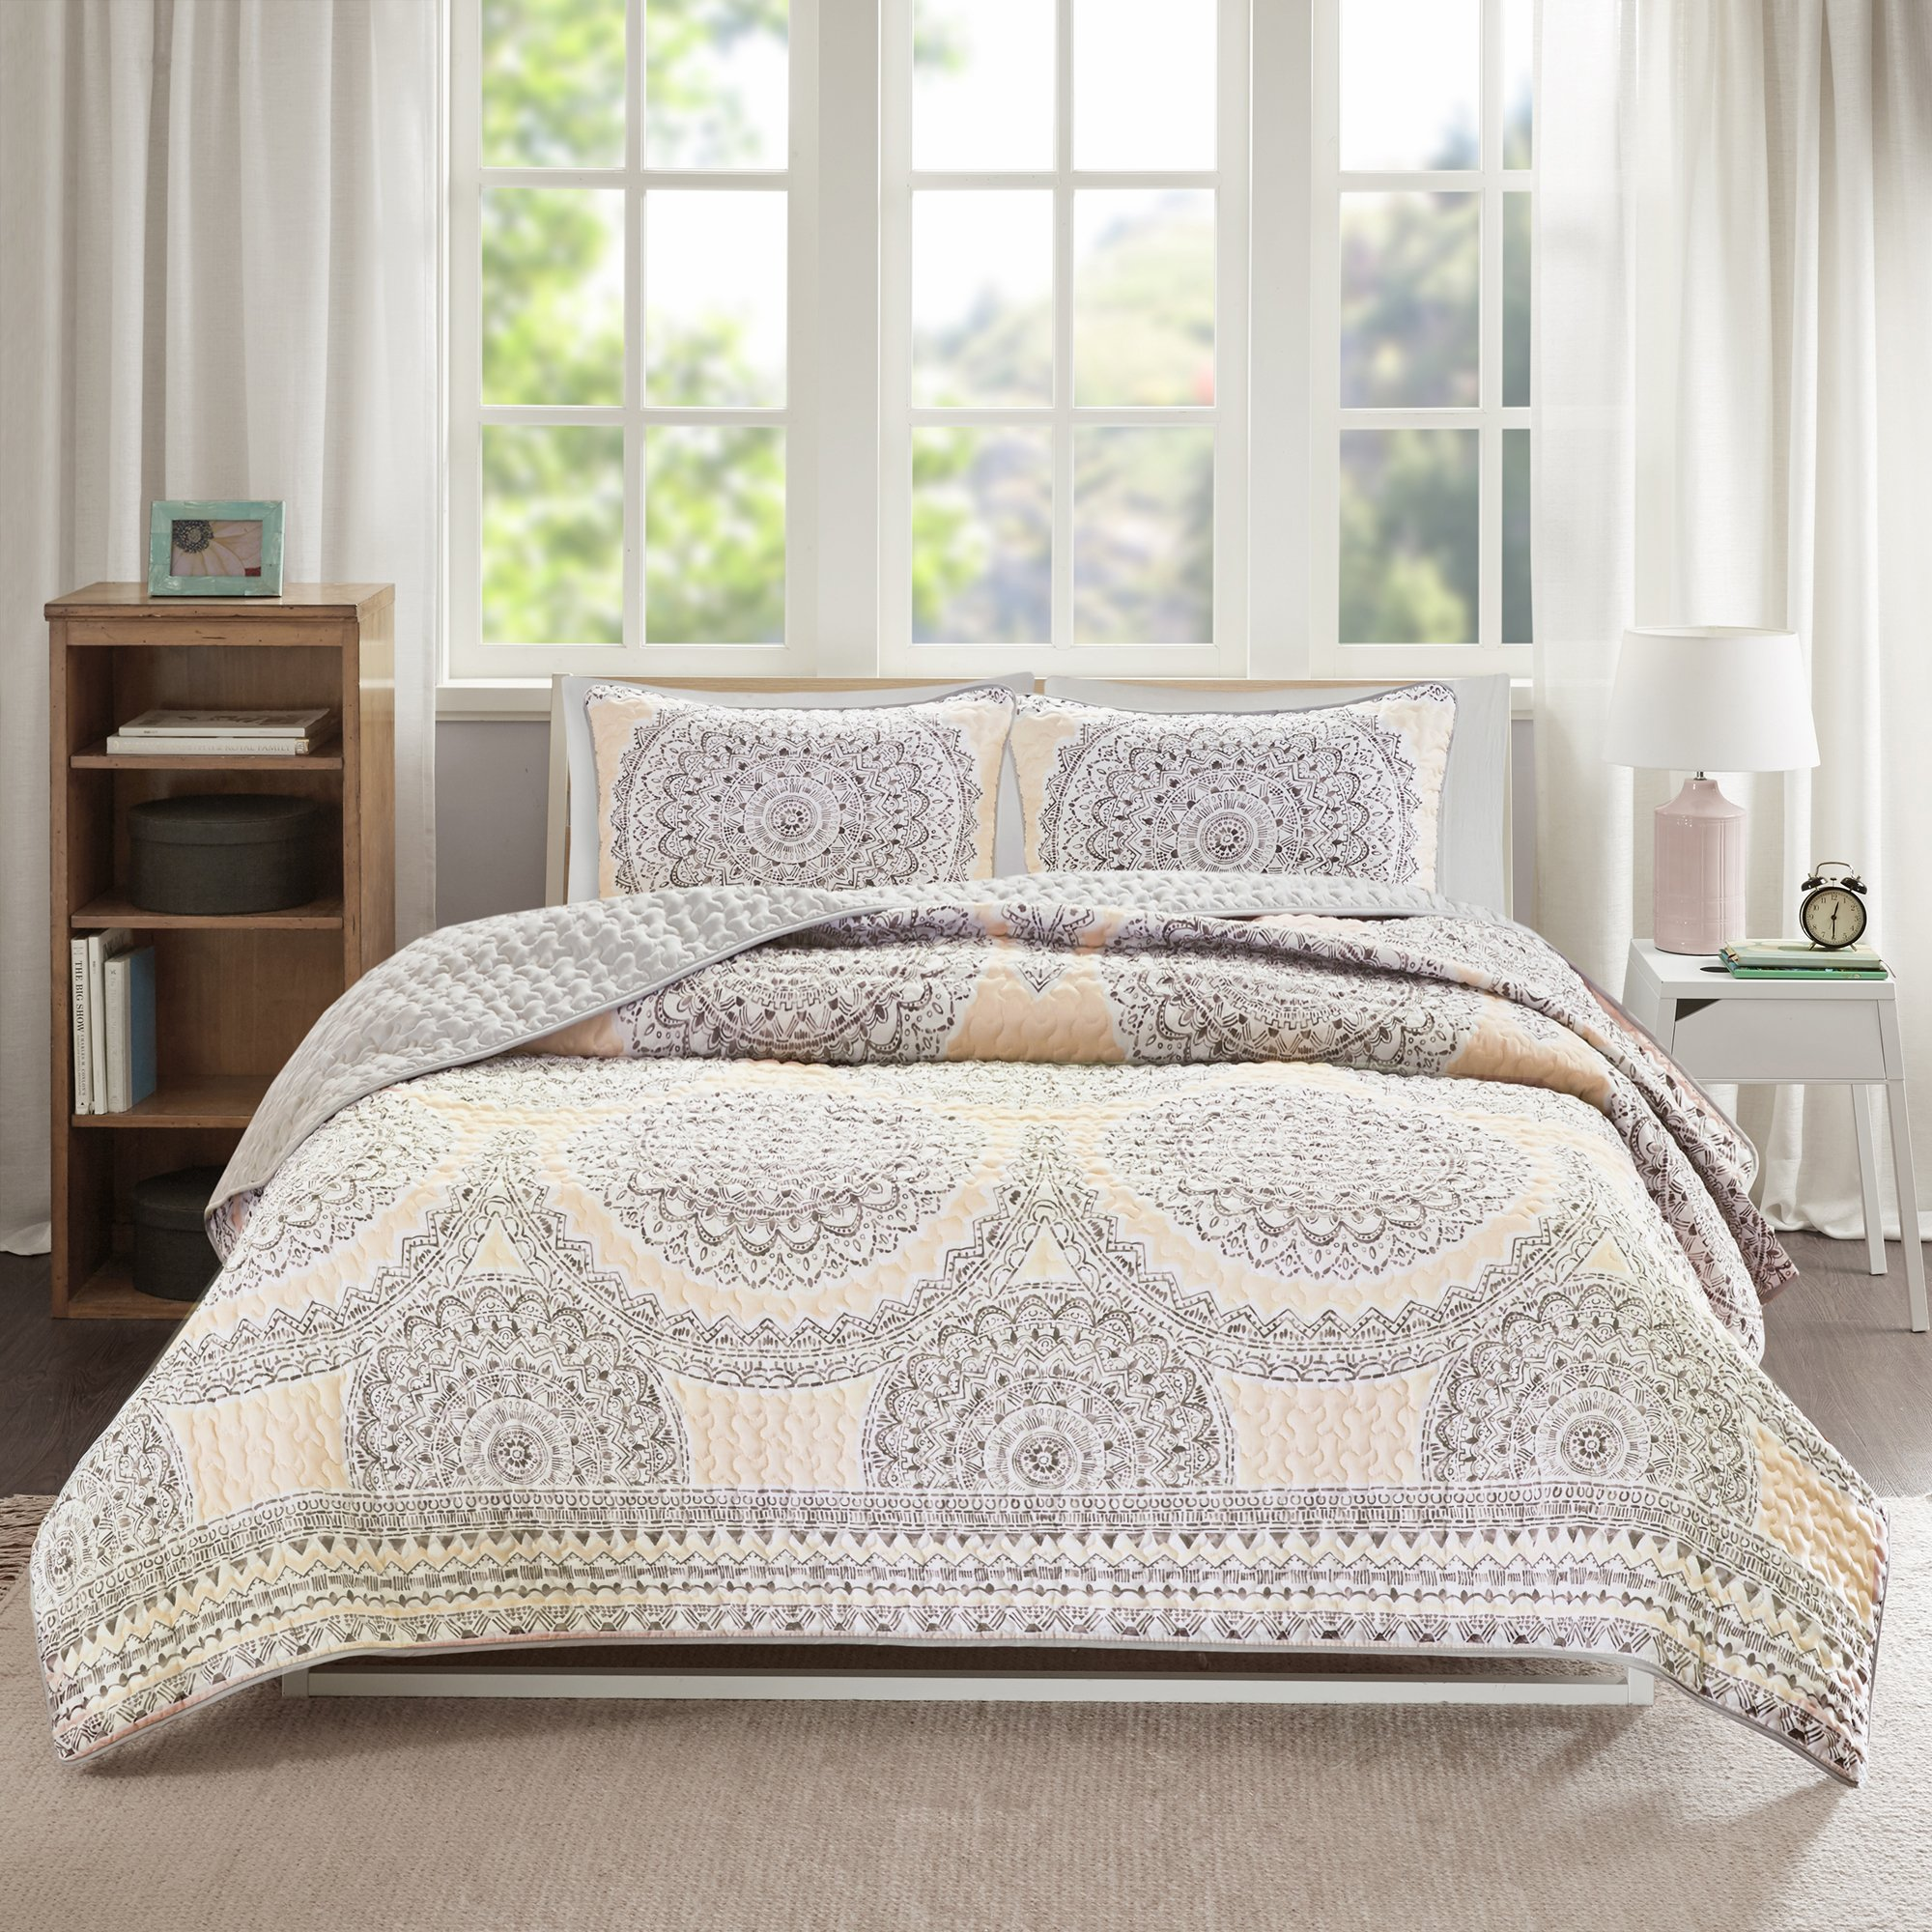 Bedding Sets Twin & Twin Xl - Quilt/Coverlet Set - 2 Pieces - Blush/Pink/Grey - Printed Medallions - Lightweight Twin Size Bedding Sets For Girls - Bedspread Fits Twin & Twin Xl - Adele by Comfort Spaces (Image #2)